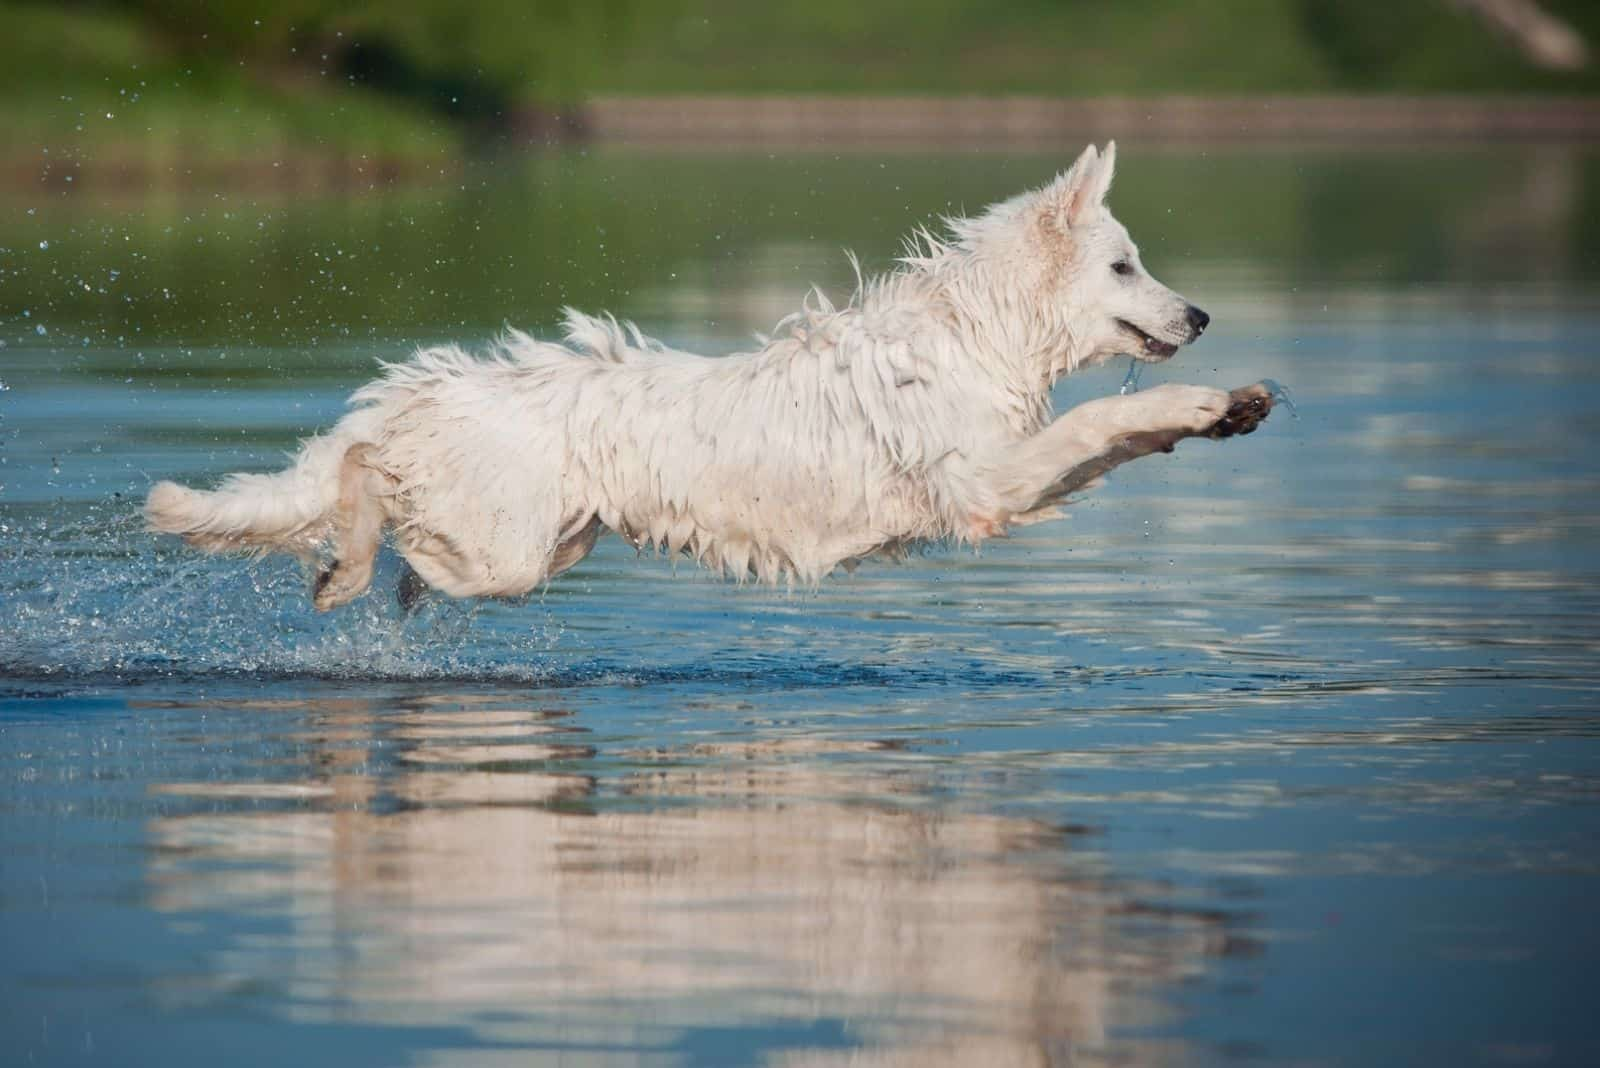 strong white german shepherd dog jumping over a body of water